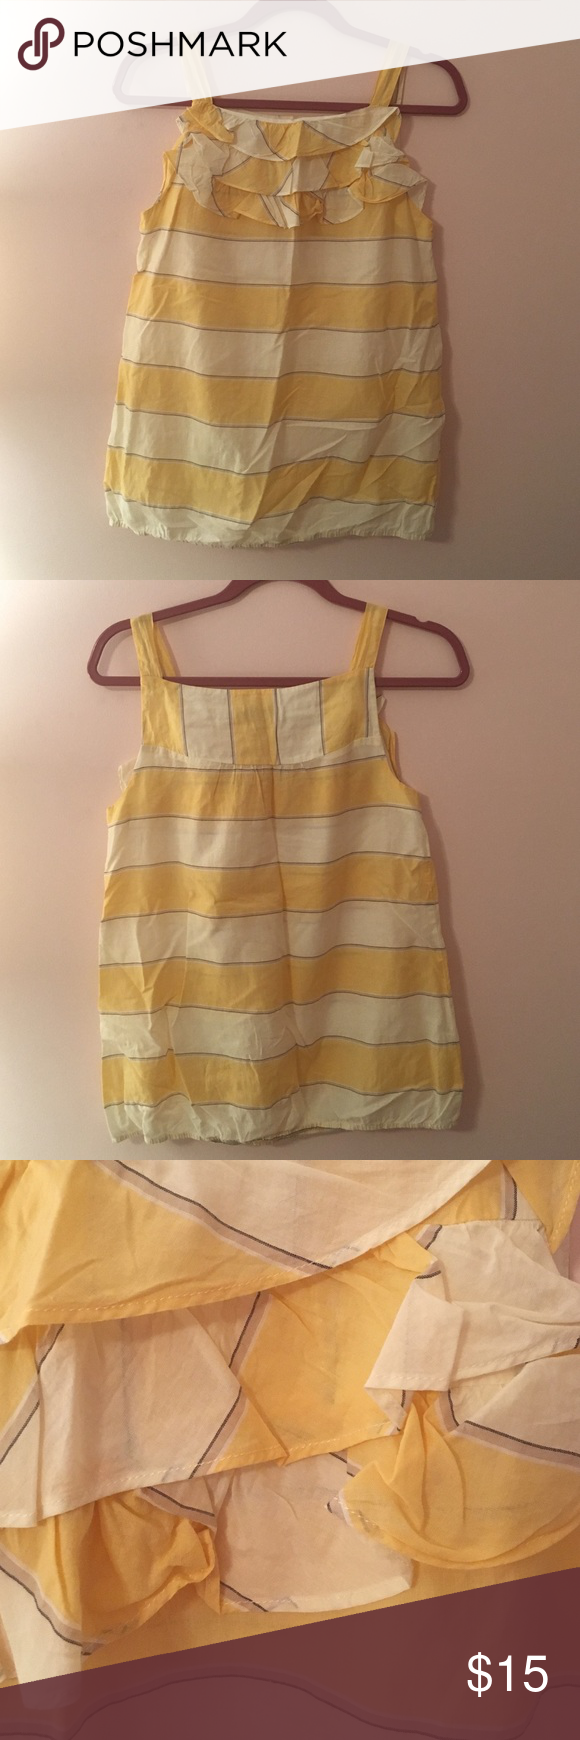 Loft striped tank with ruffle detail Yellow, cream, grey and blue striped tank with gathered bottom LOFT Tops Tank Tops